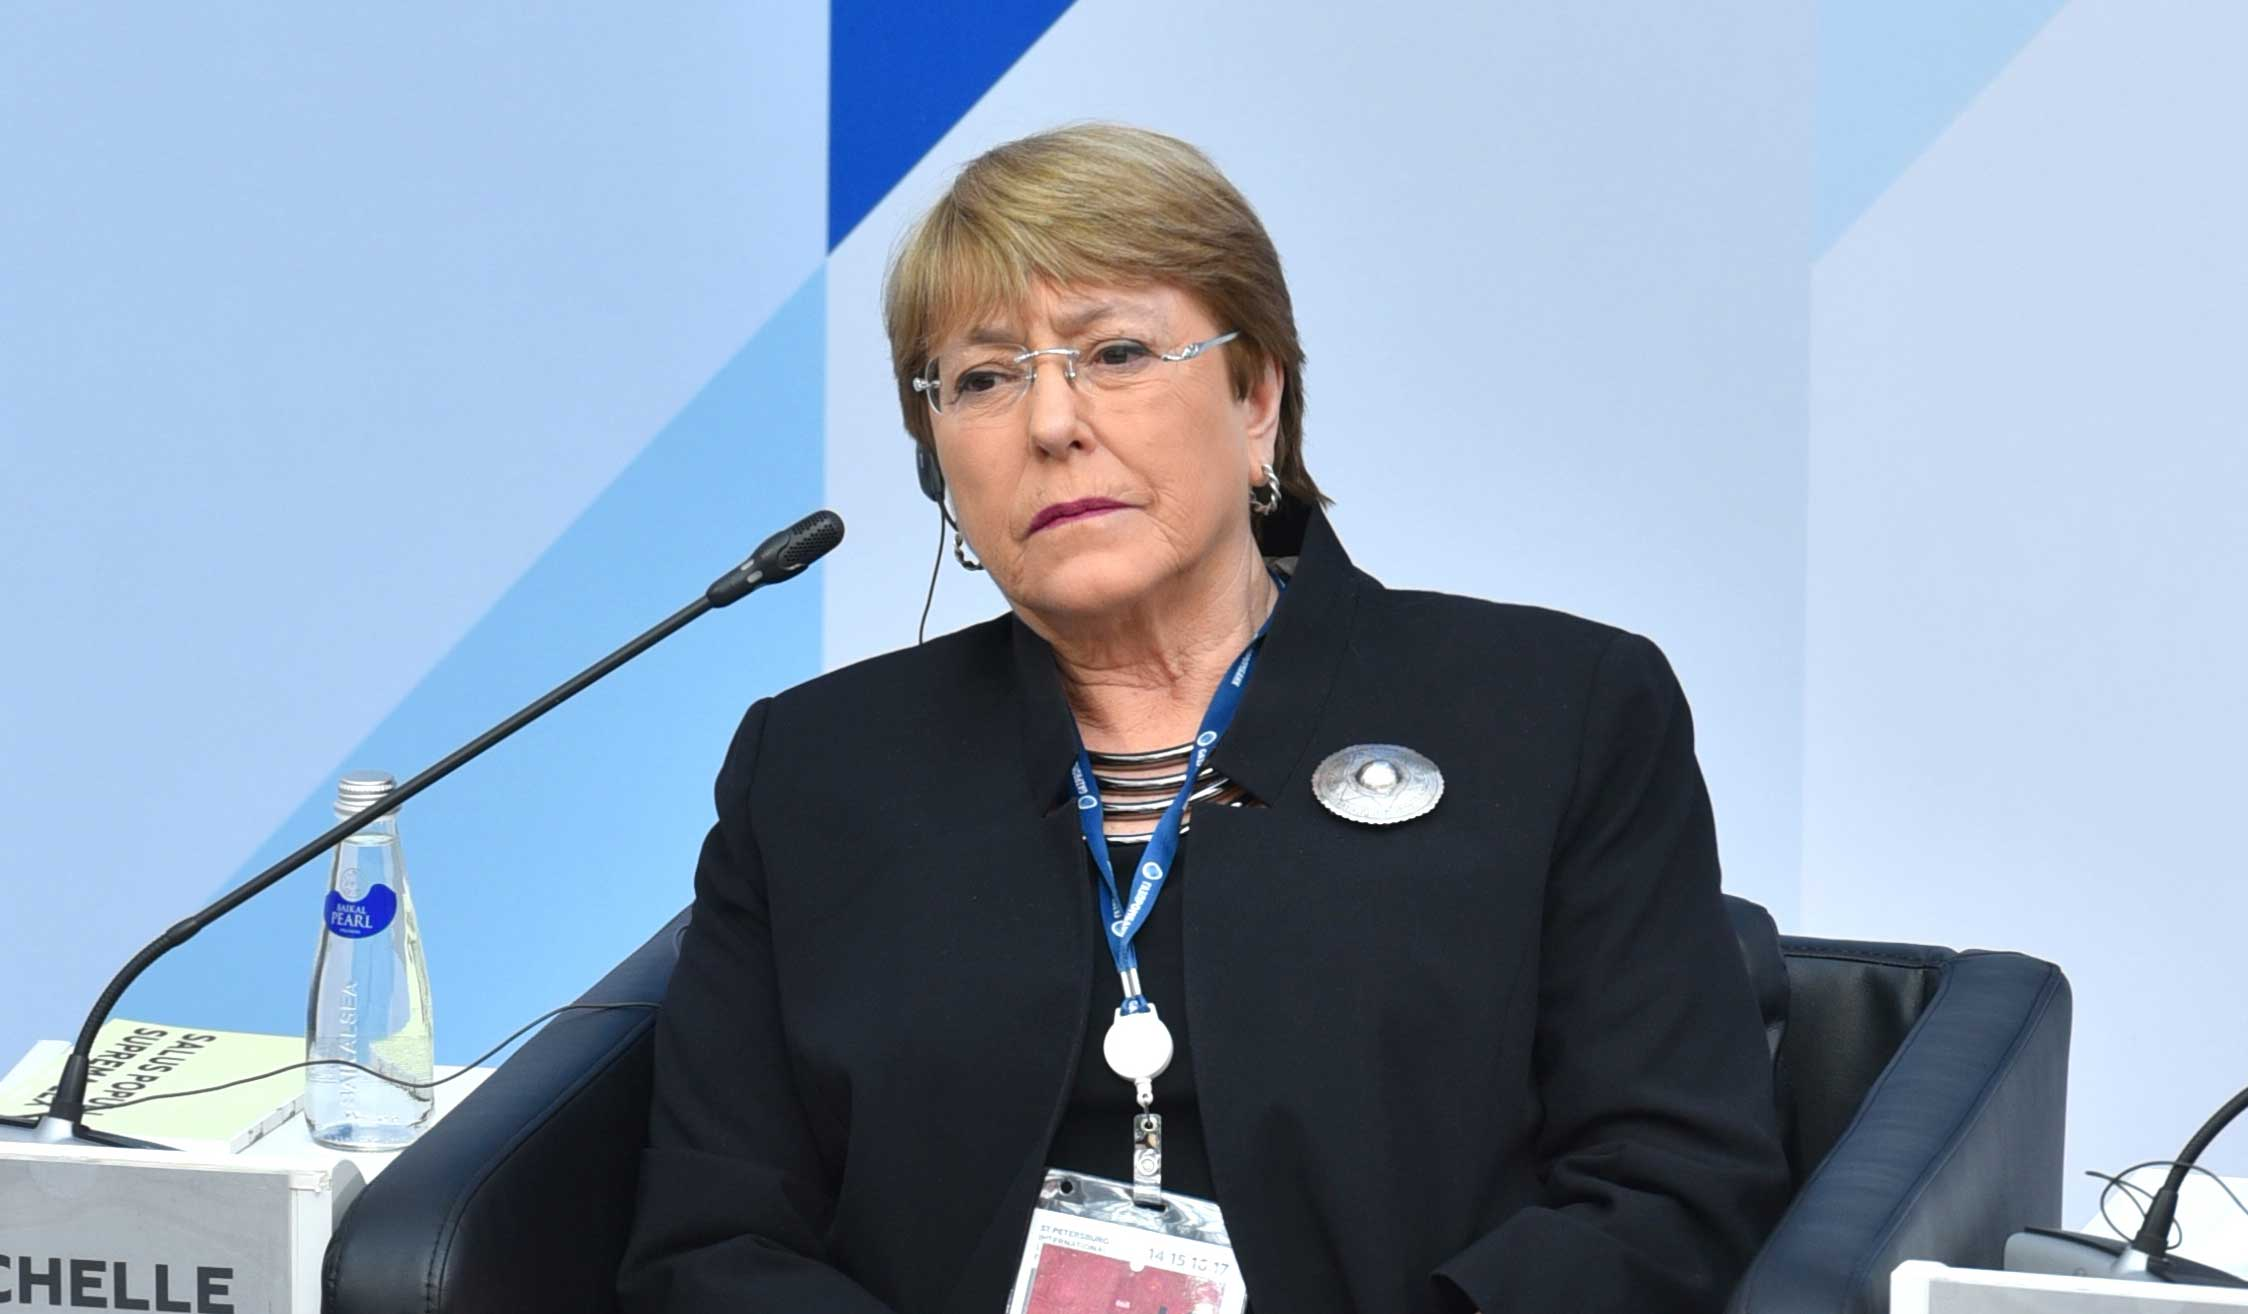 Michelle Bachelet Jeria, United Nations High Commissioner for Human Rights. The high commissioner is the principal human rights official of the UN.